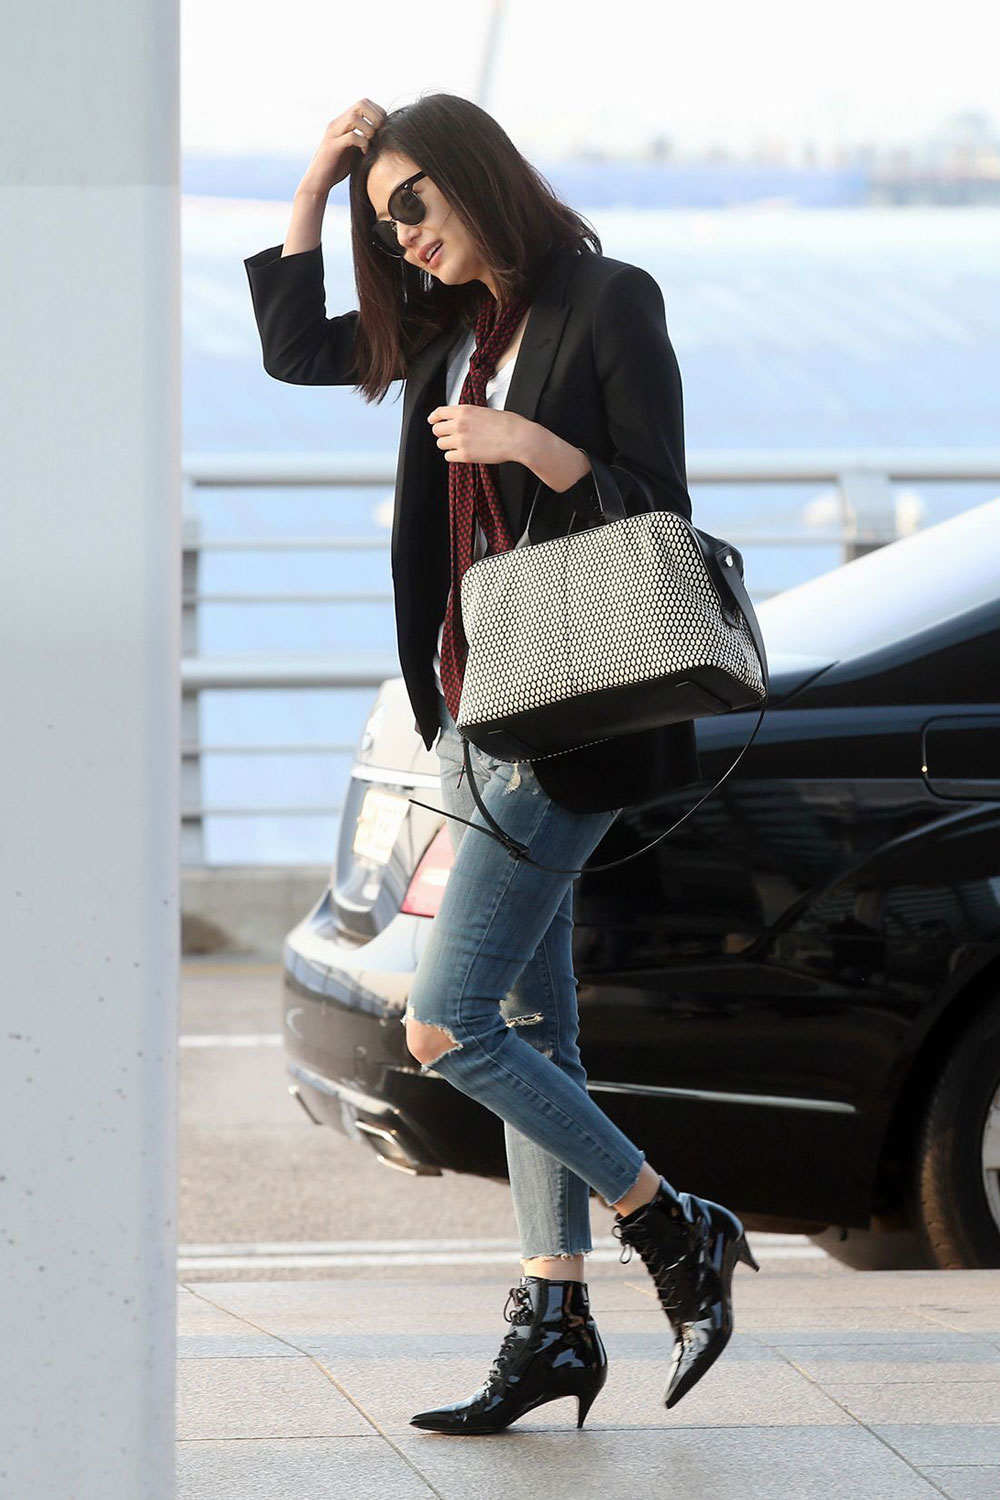 Korean actress Jun Ji Hyun airport fashion